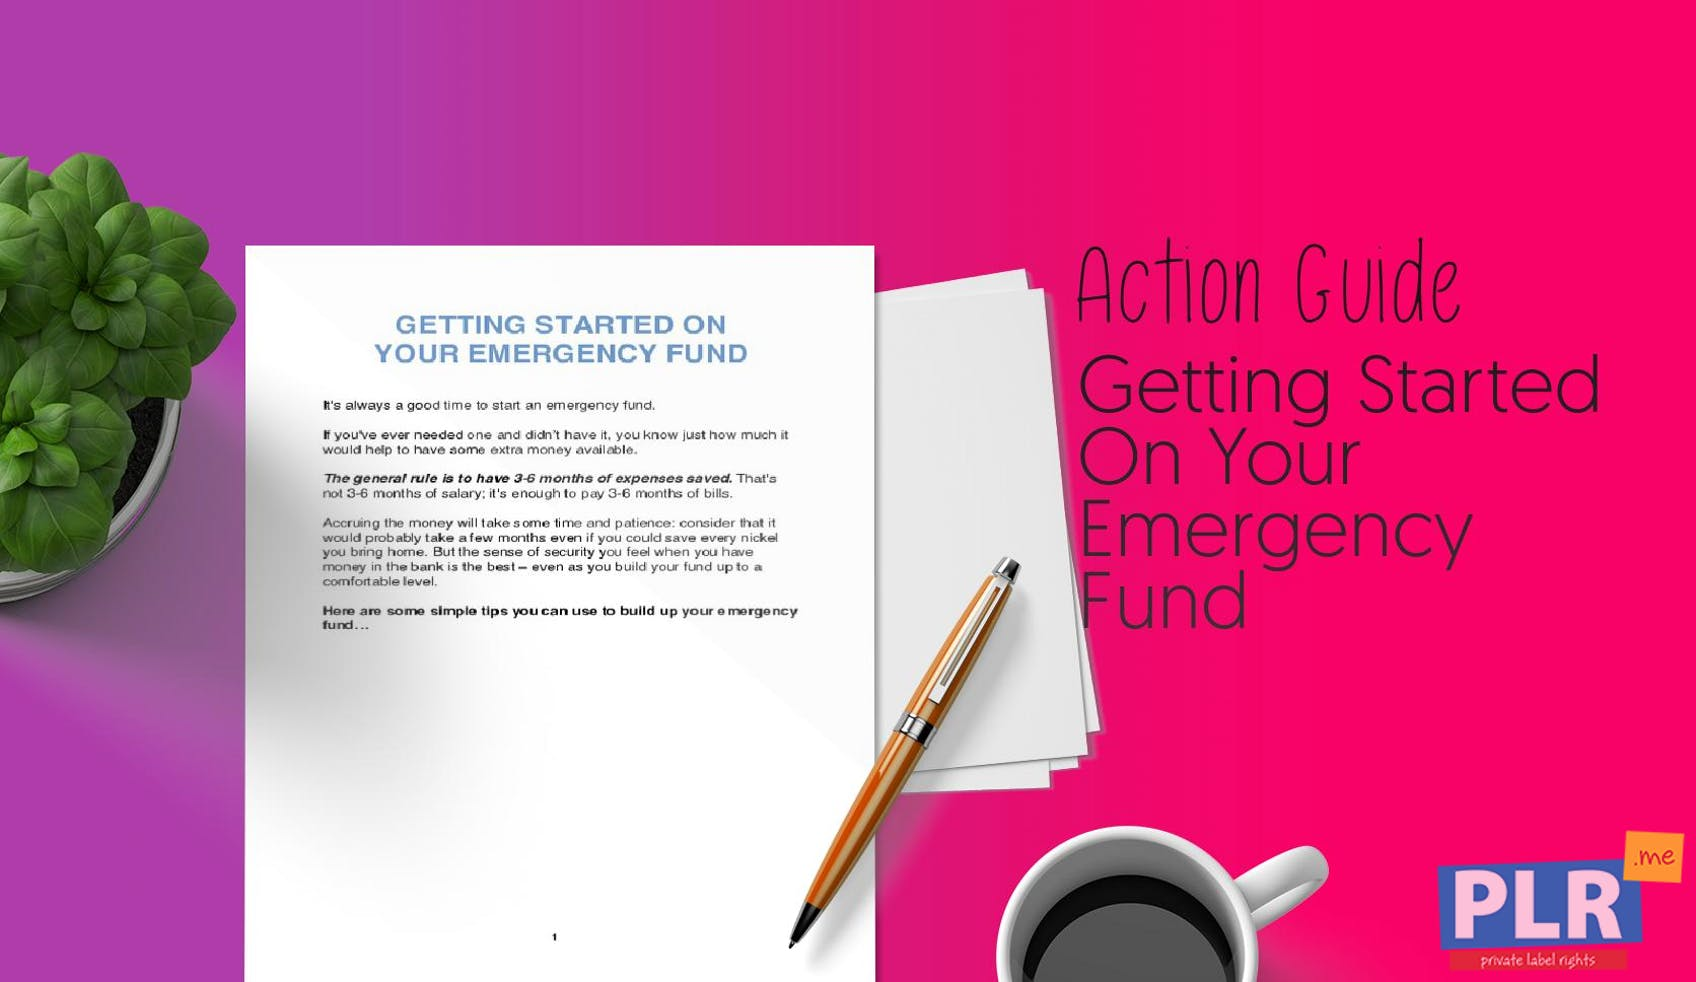 Getting Started On Your Emergency Fund